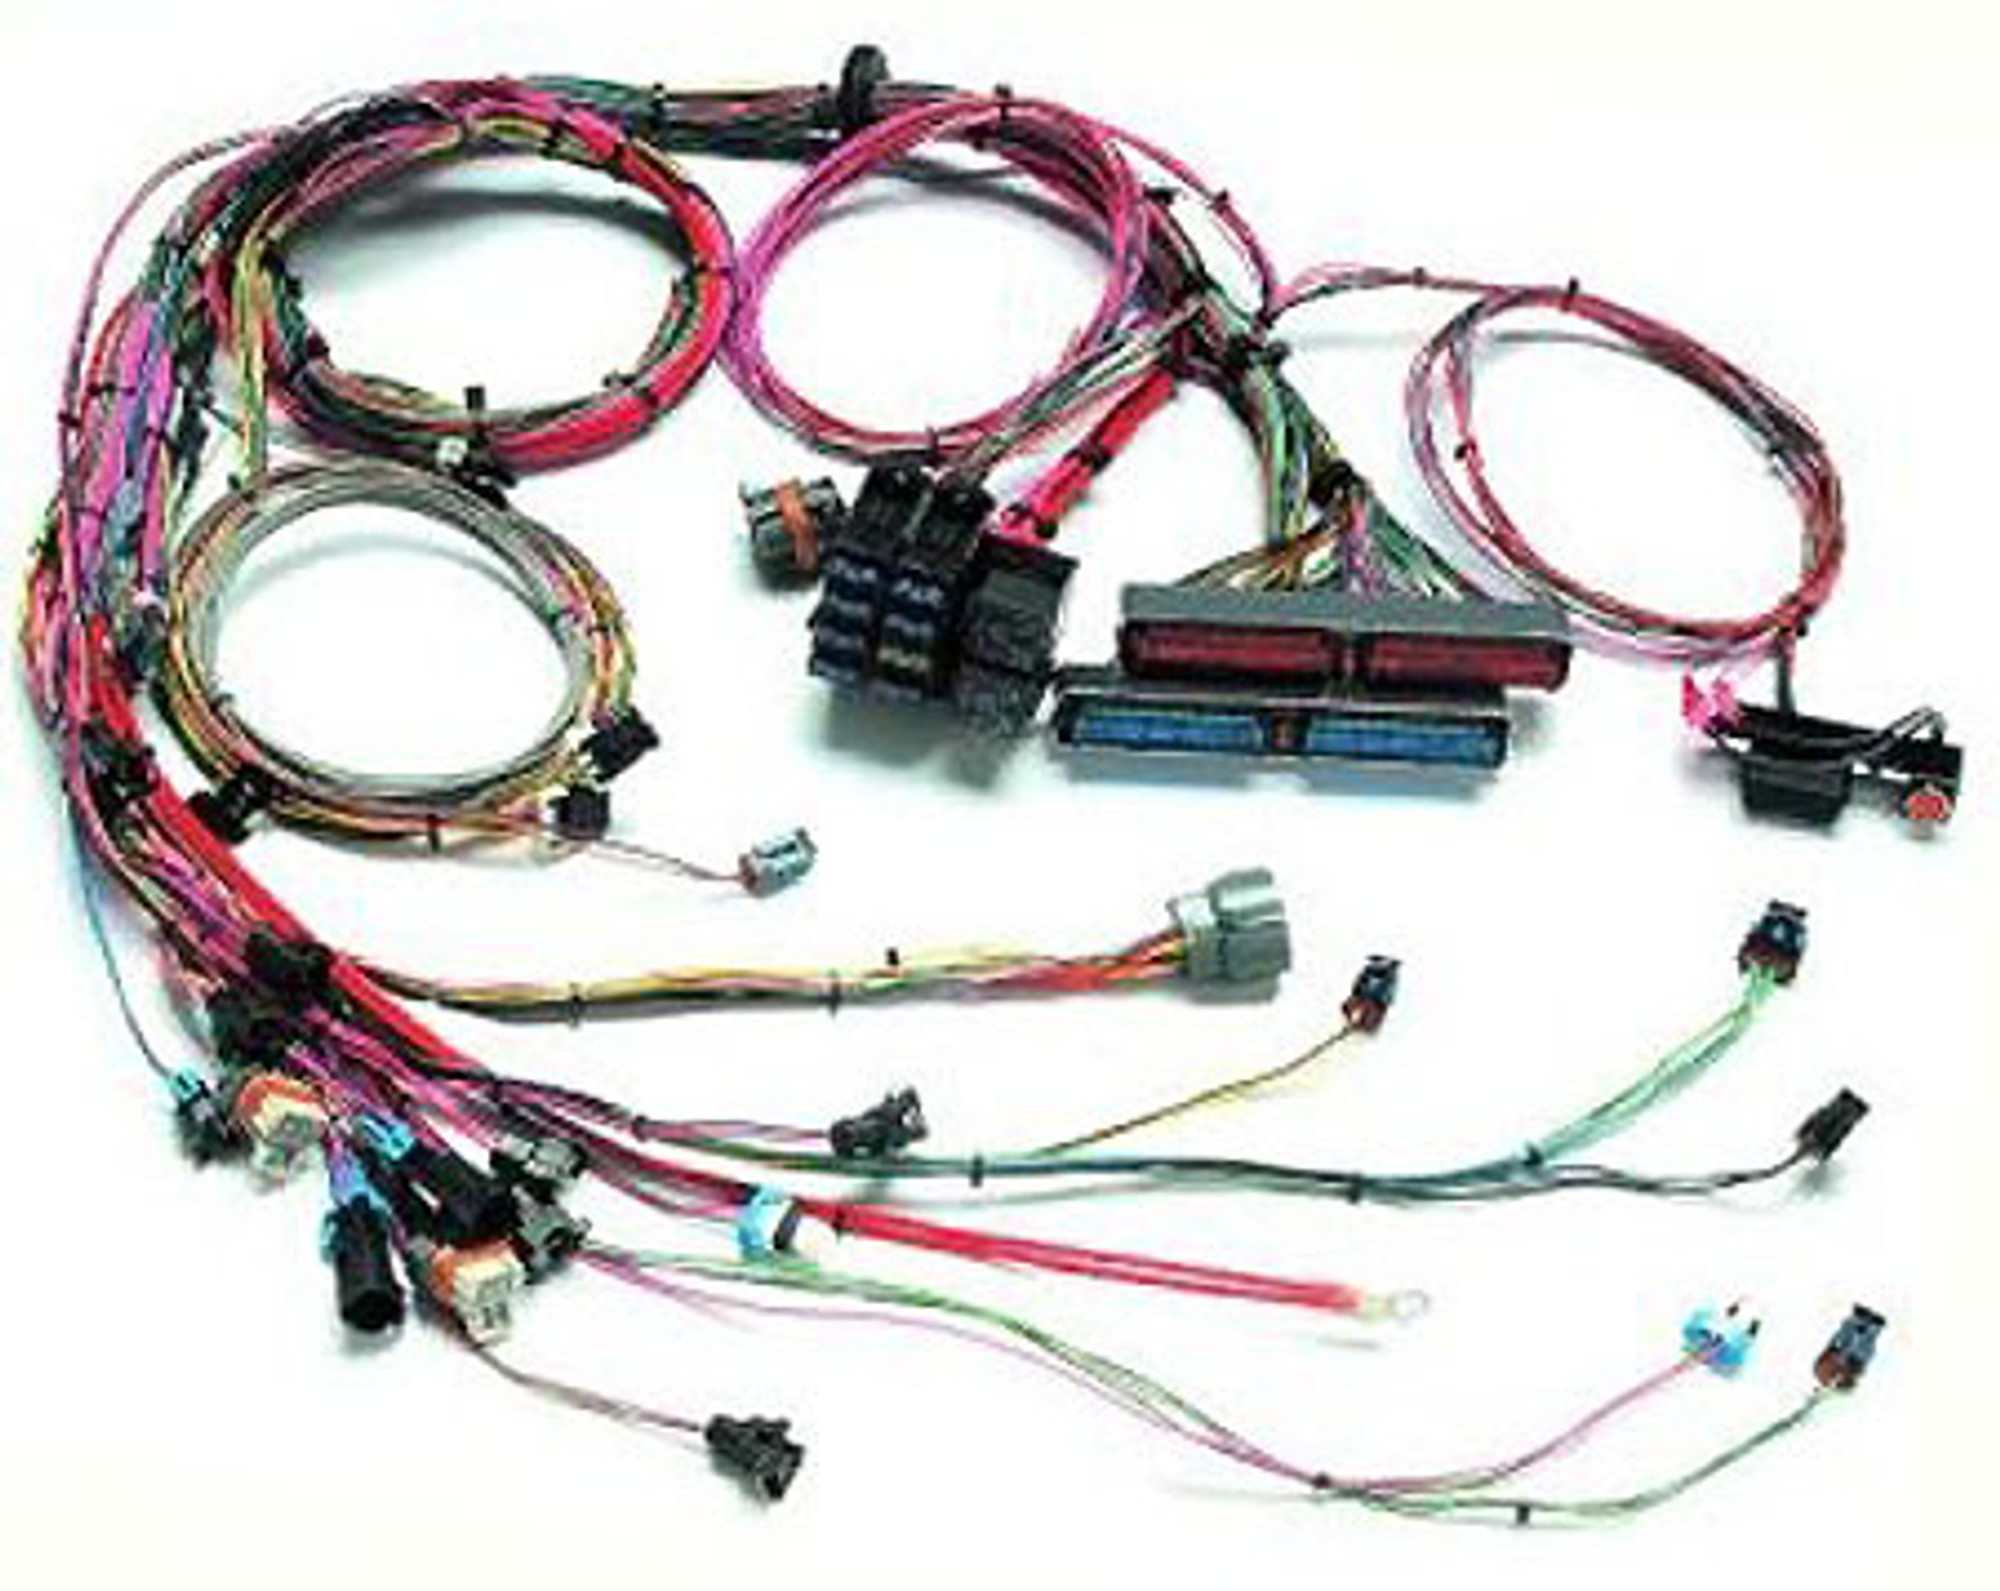 26033 gm style ls 1 engine harness factory five parts catalog  26033 gm style ls 1 engine harness factory five parts catalog